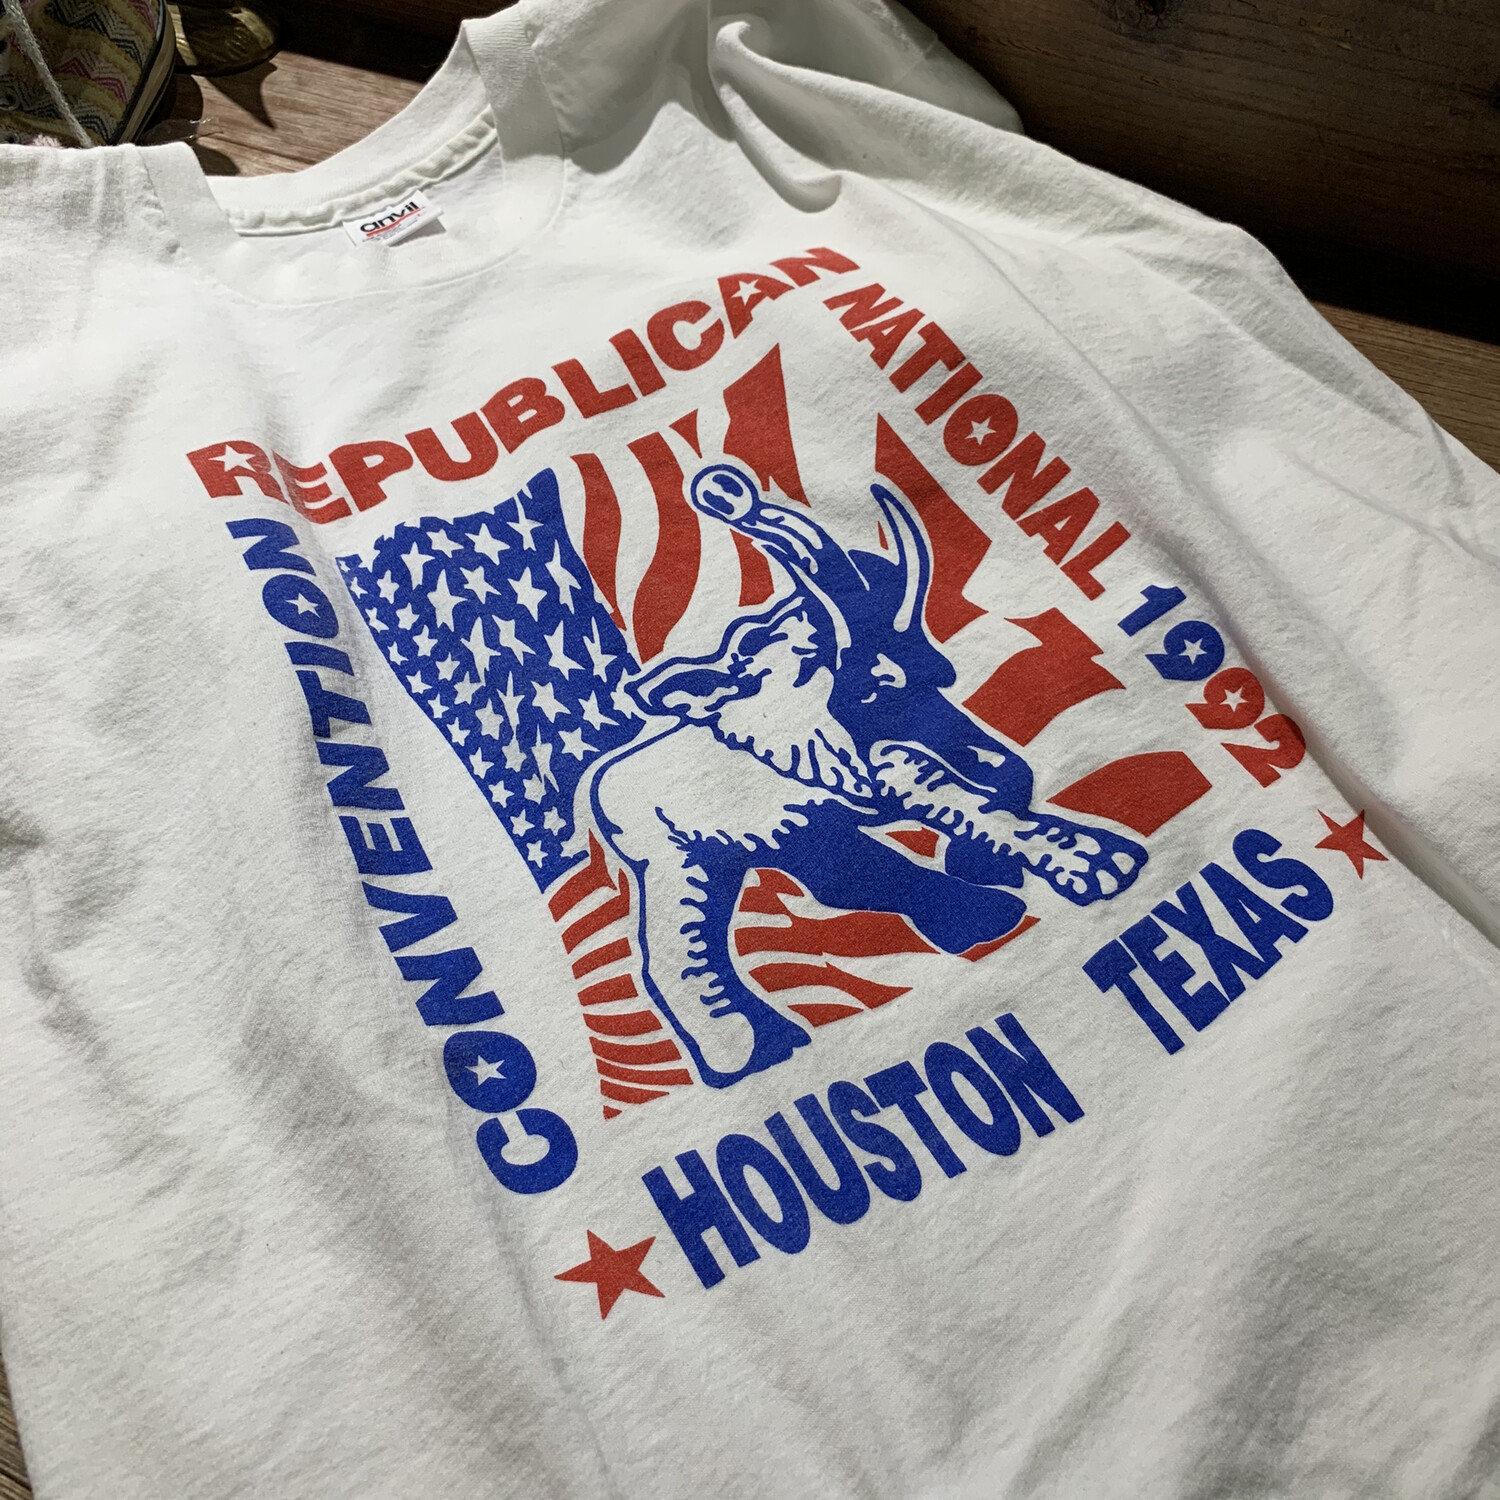 1992 REPUBLICAN NATIONAL CONVENTION TEE